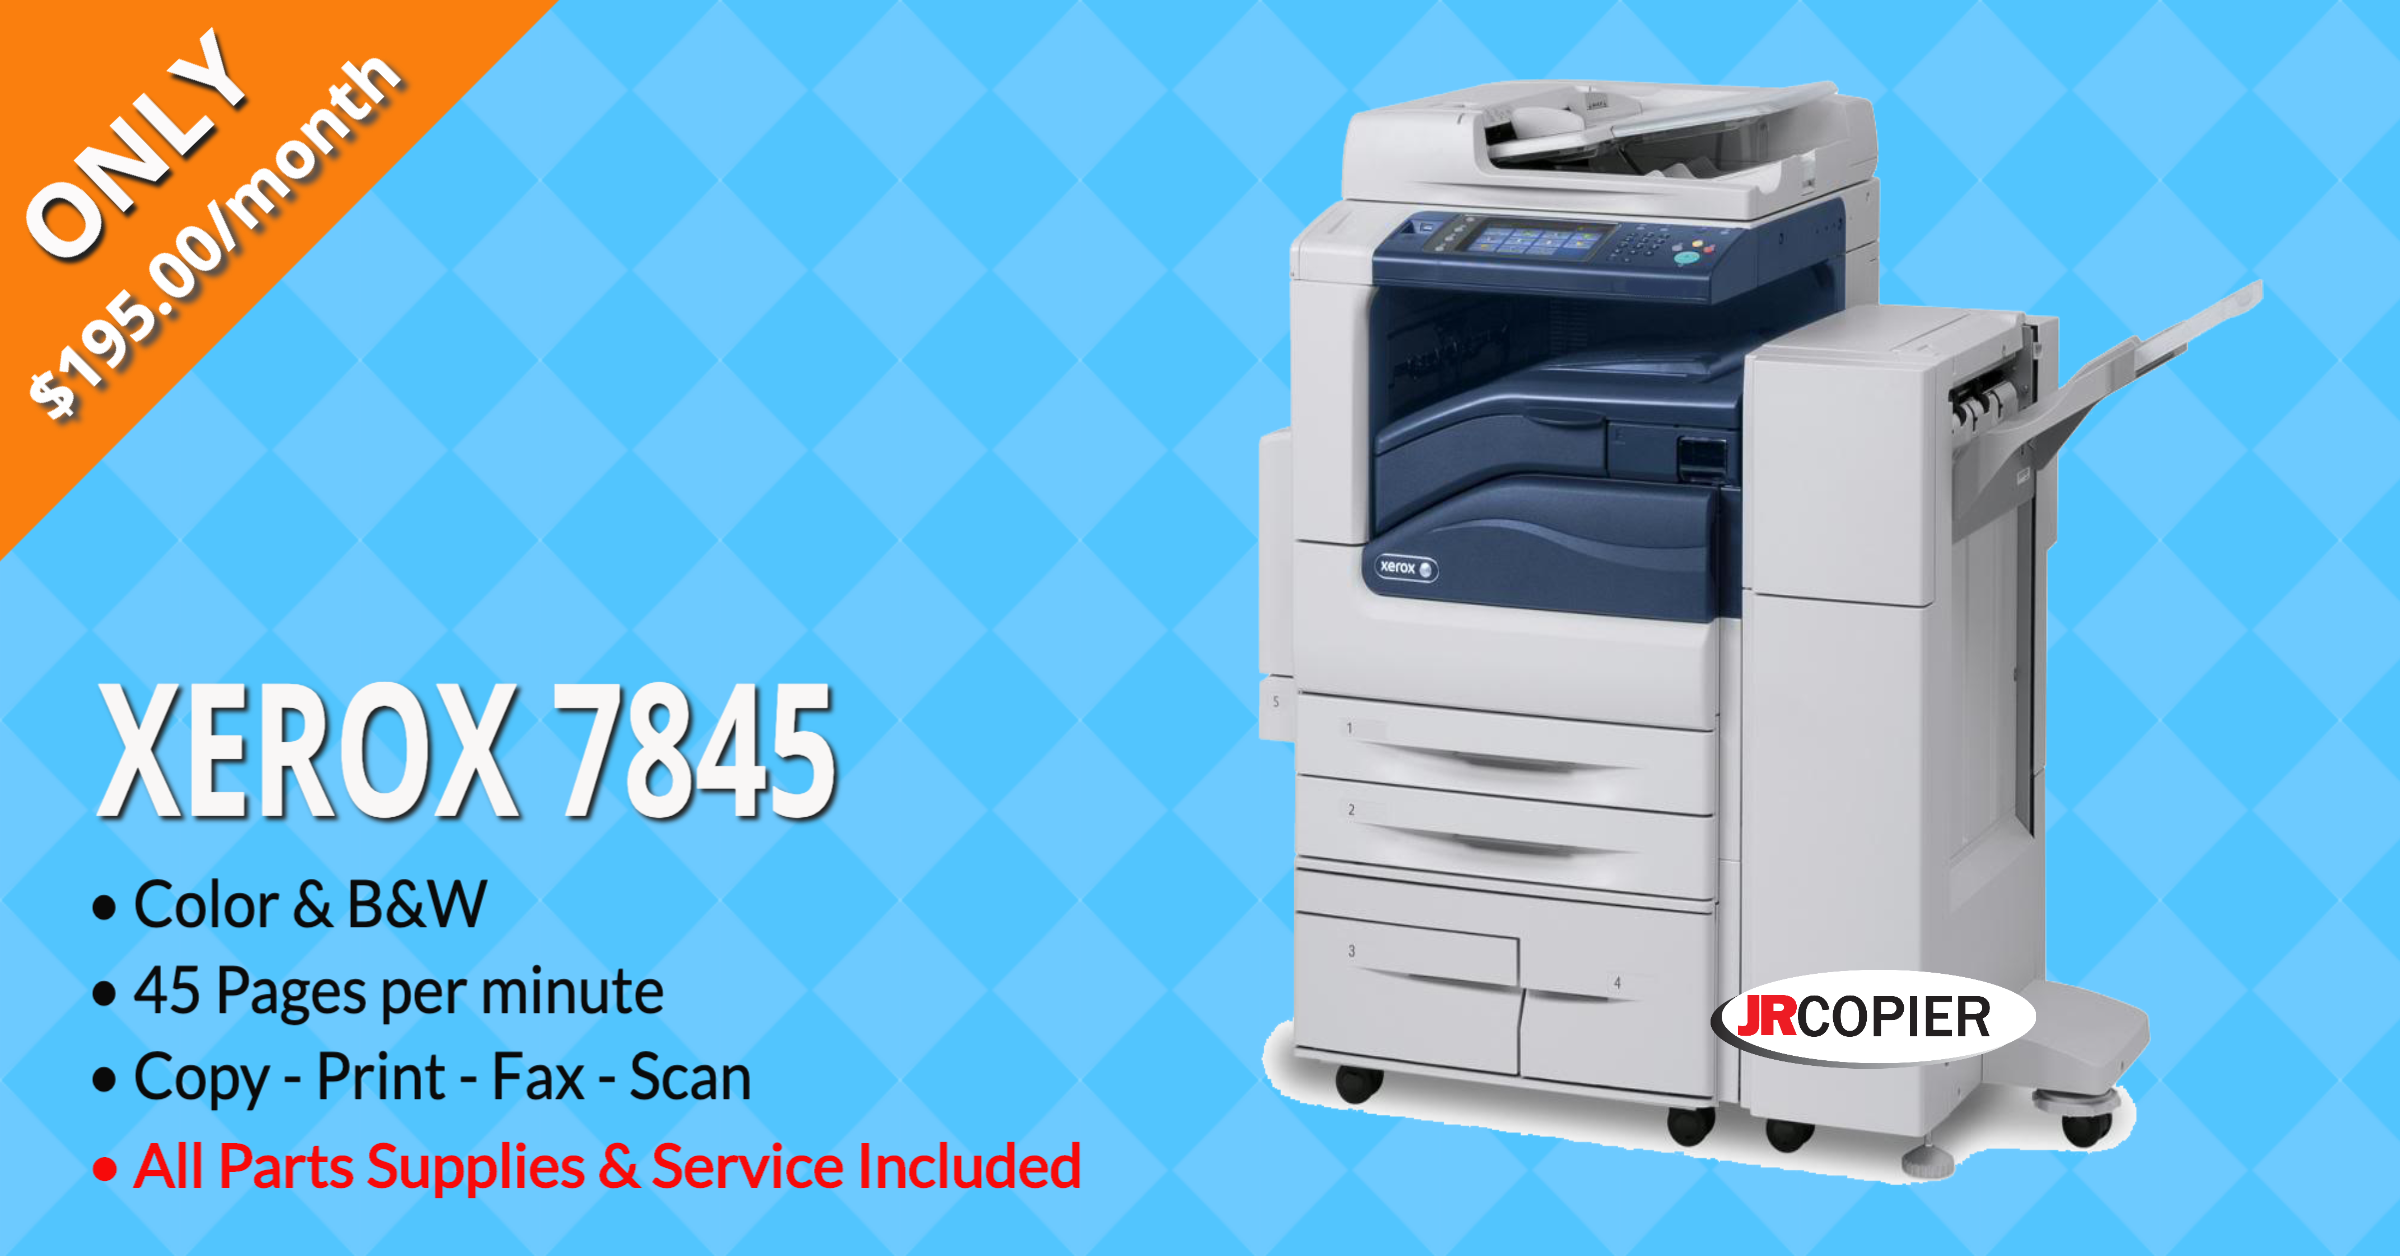 Printer Rental Services 33185, 33193